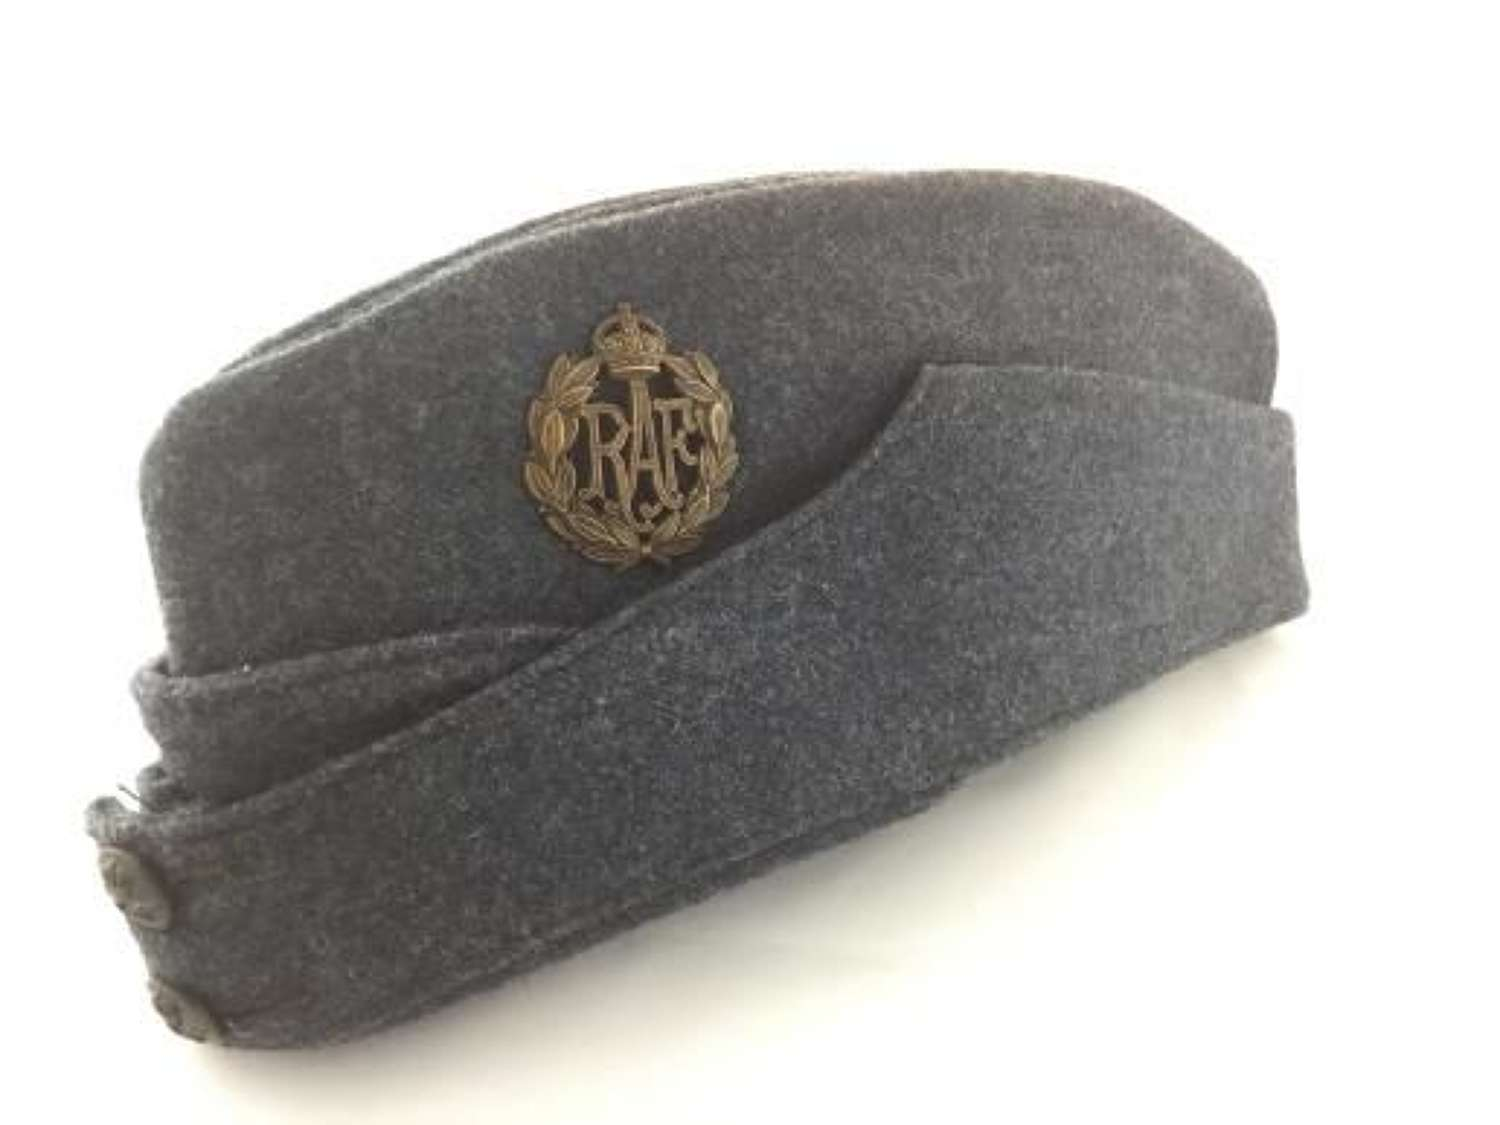 OUTSTANDING 1945 Dated RAF OA Forage Cap - Size 6 3/8